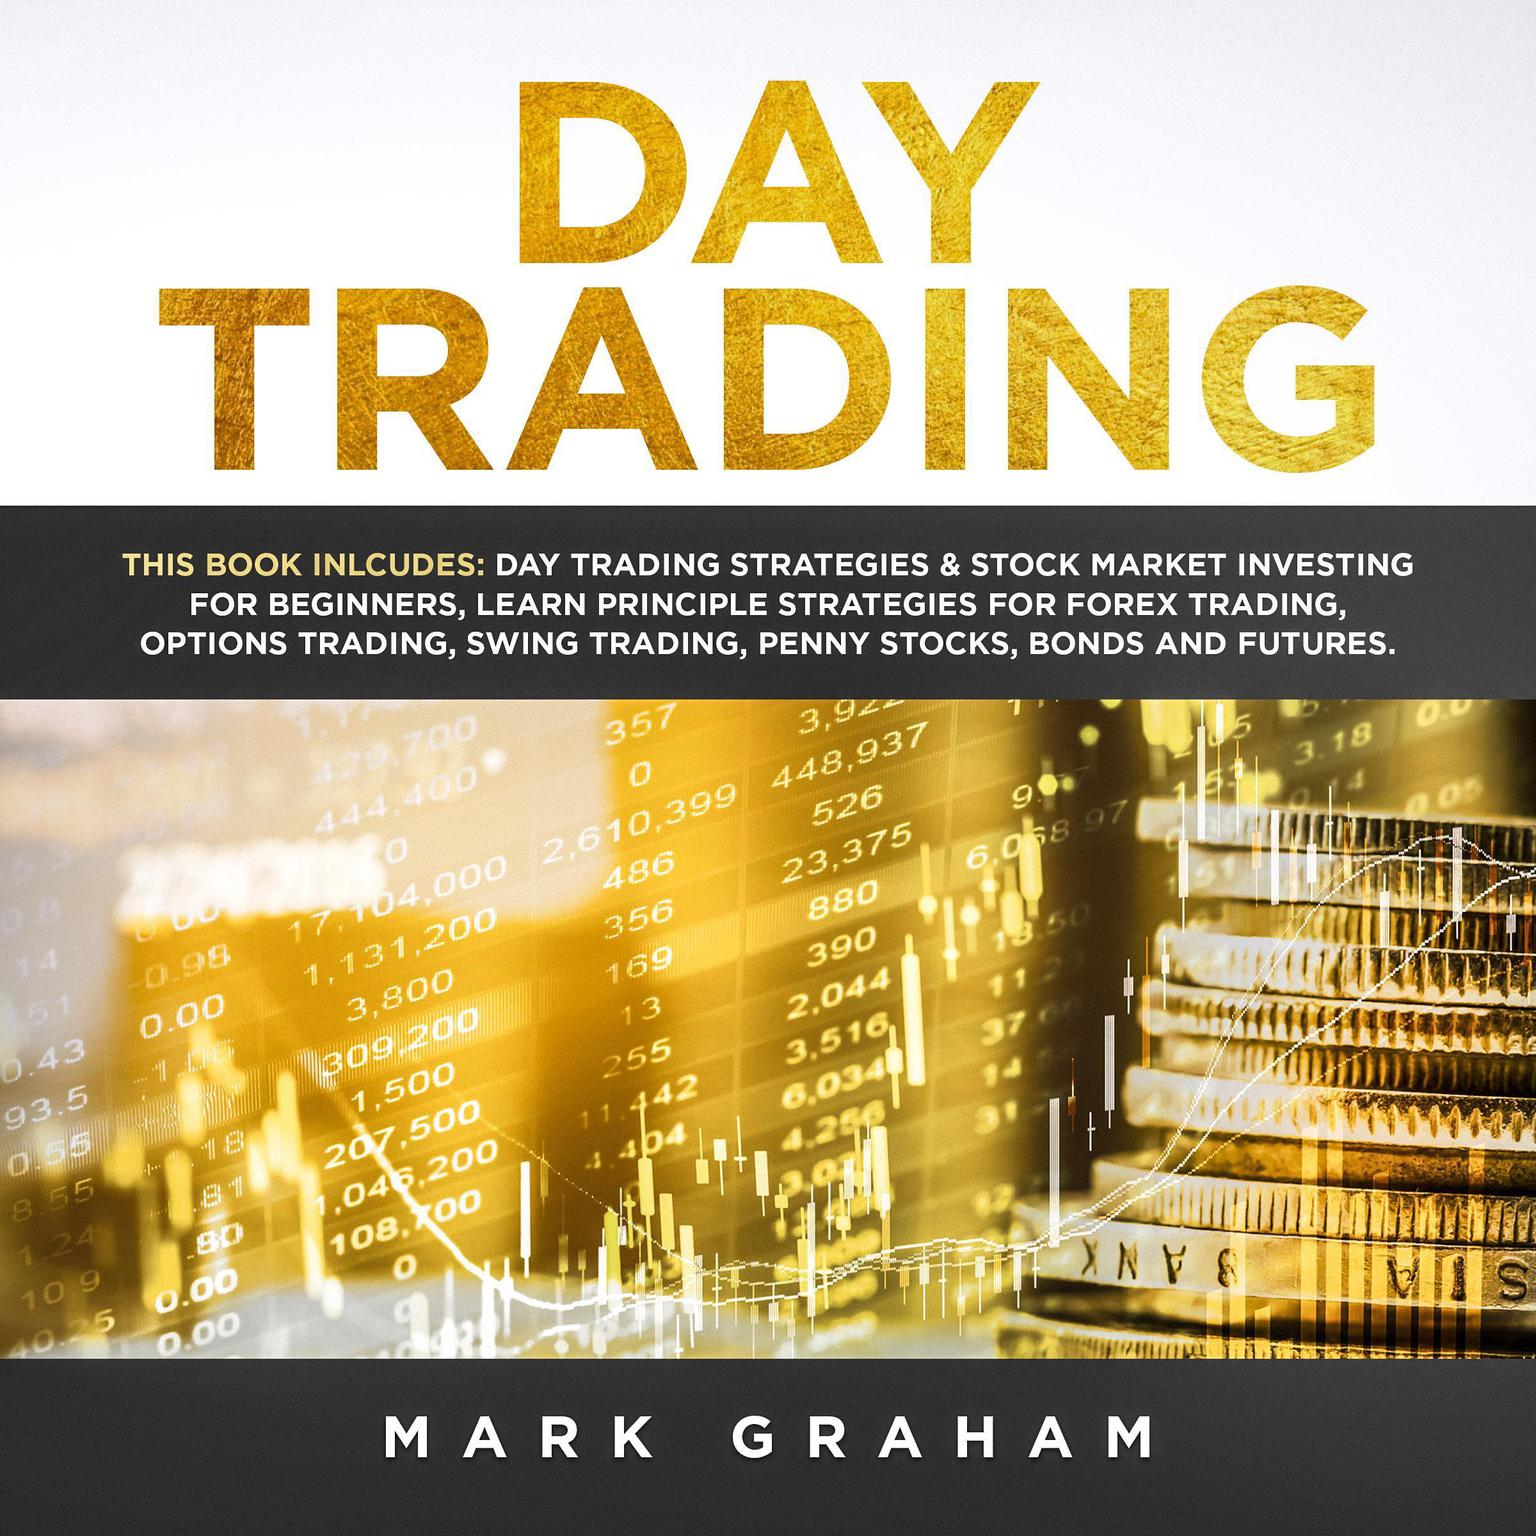 Printable Day Trading: This Book Includes: Day Trading Strategies & Stock Market Investing for Beginners; Learn Principle Strategies for Forex Trading; Options Trading; Swing, Trading; Penny Stocks; Bonds and Futures Audiobook Cover Art